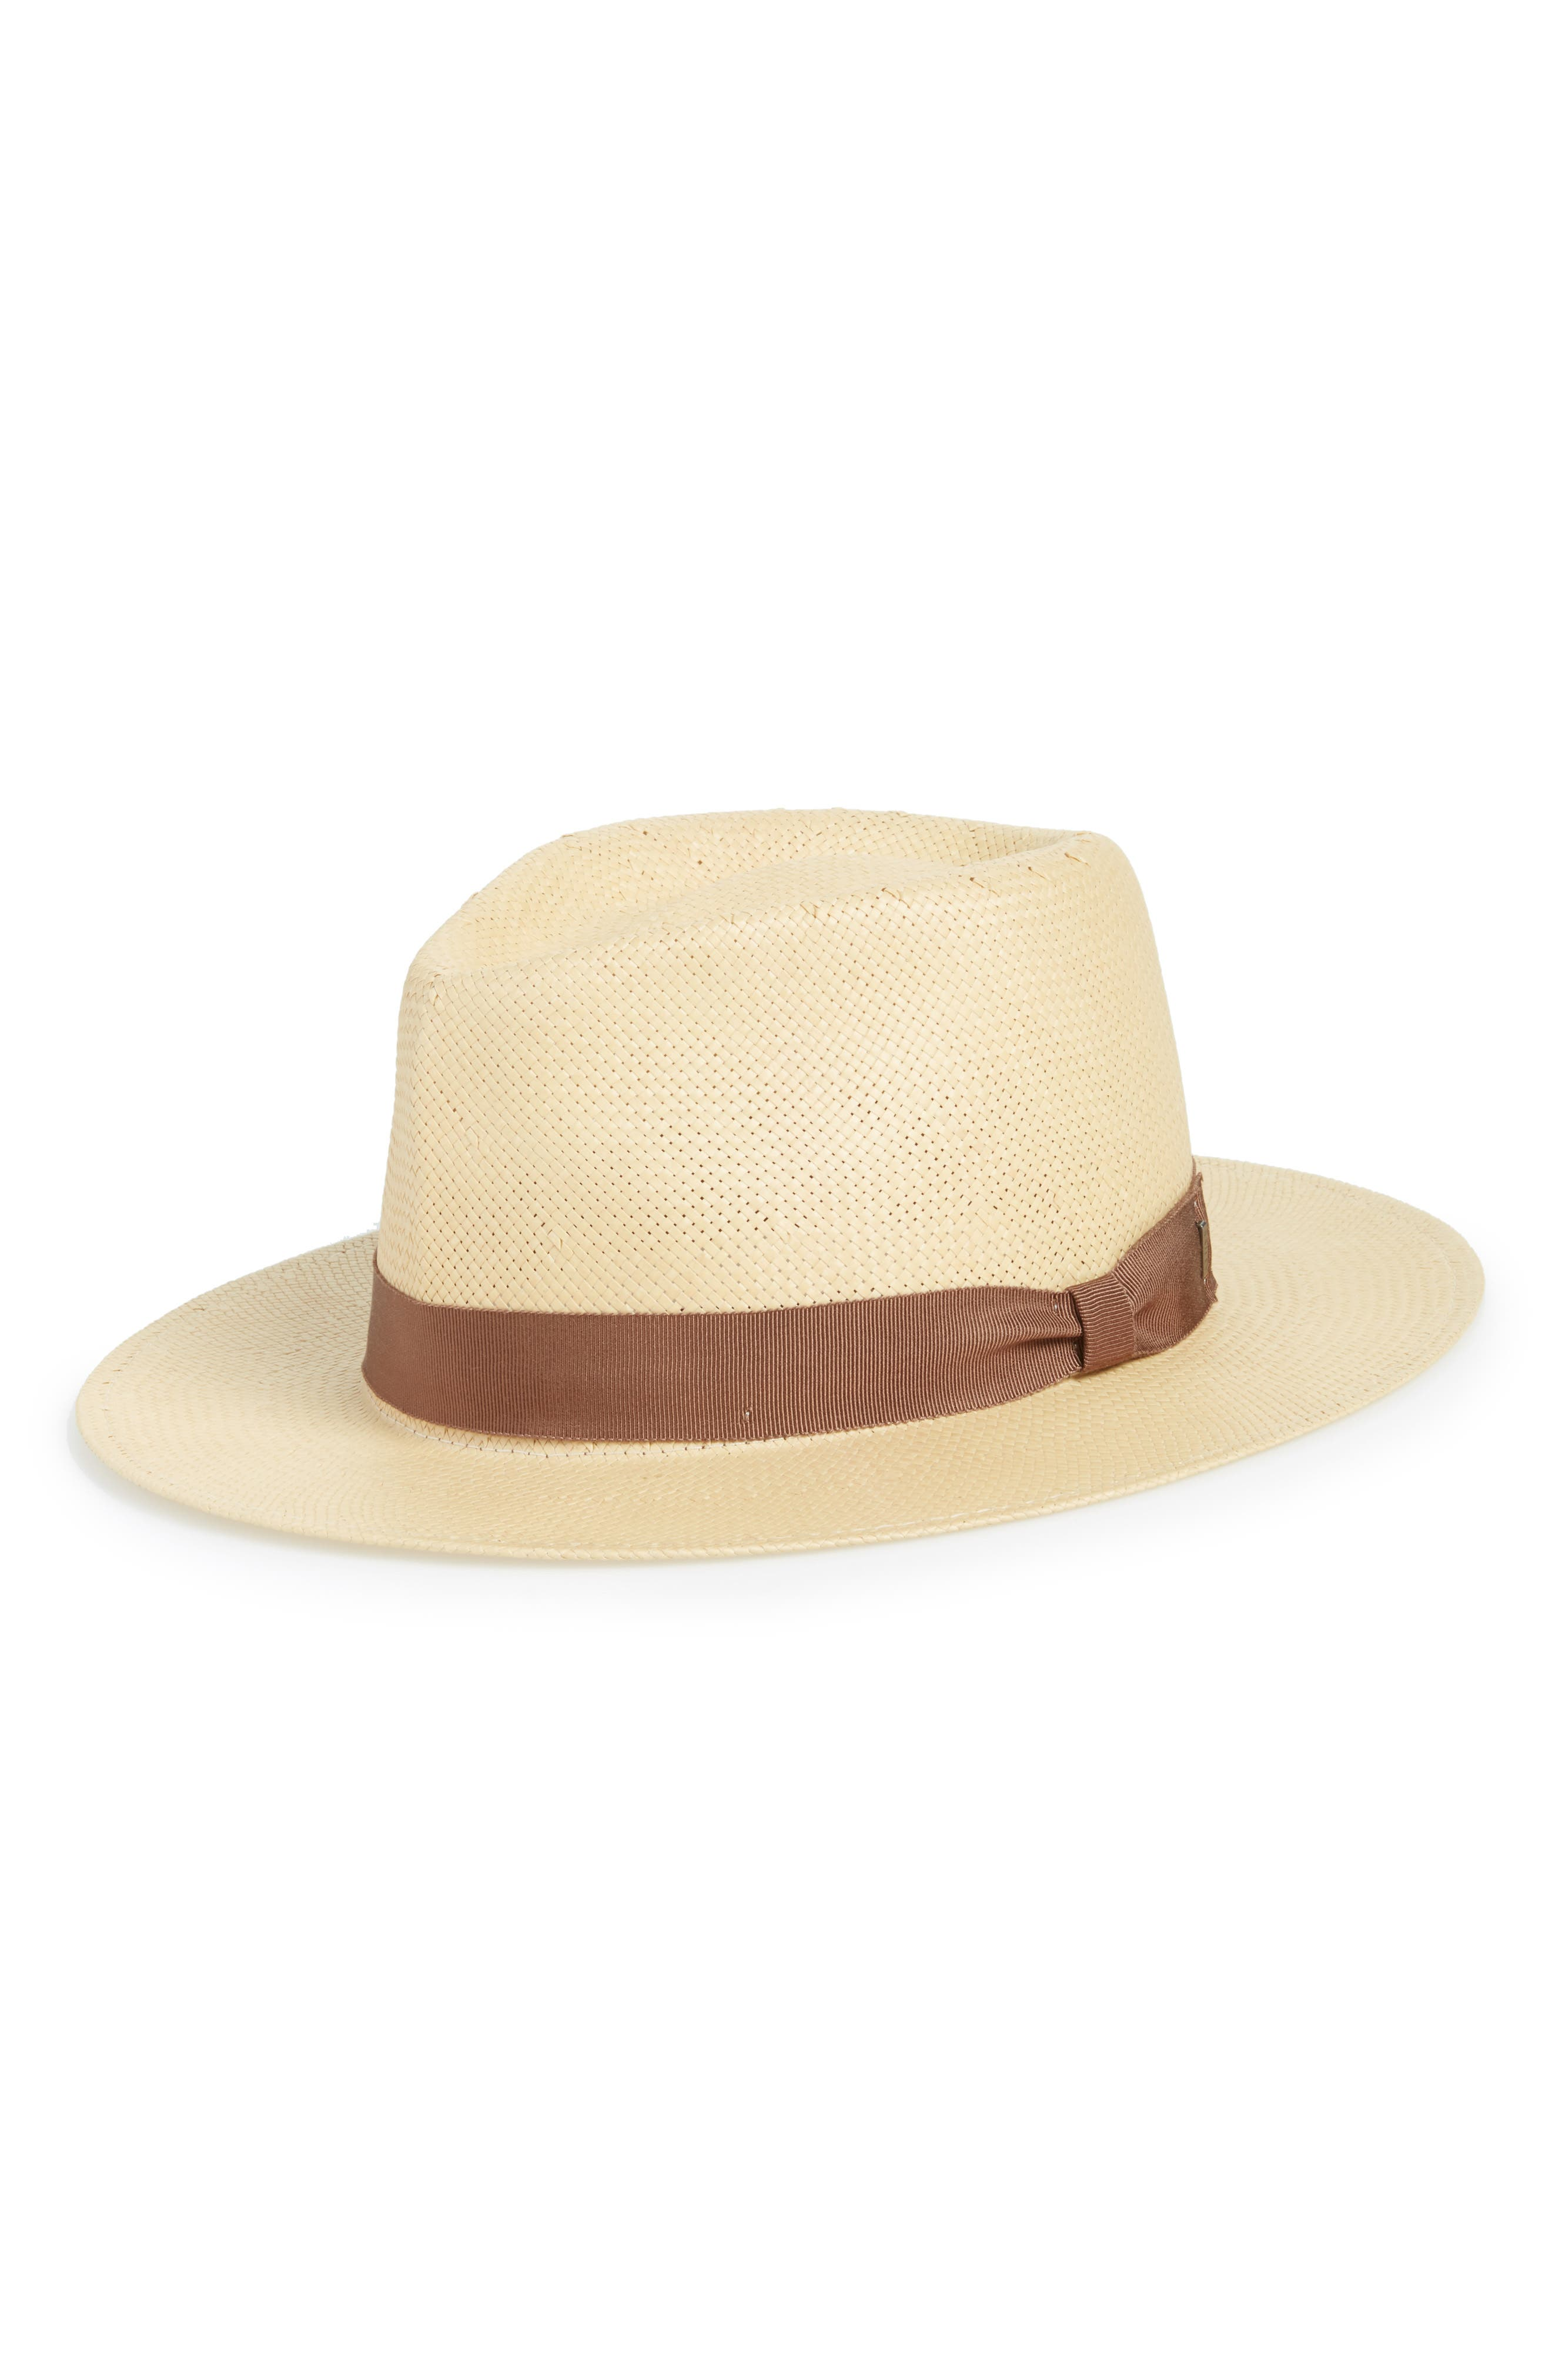 Pencer Straw Panama Hat,                         Main,                         color, 251